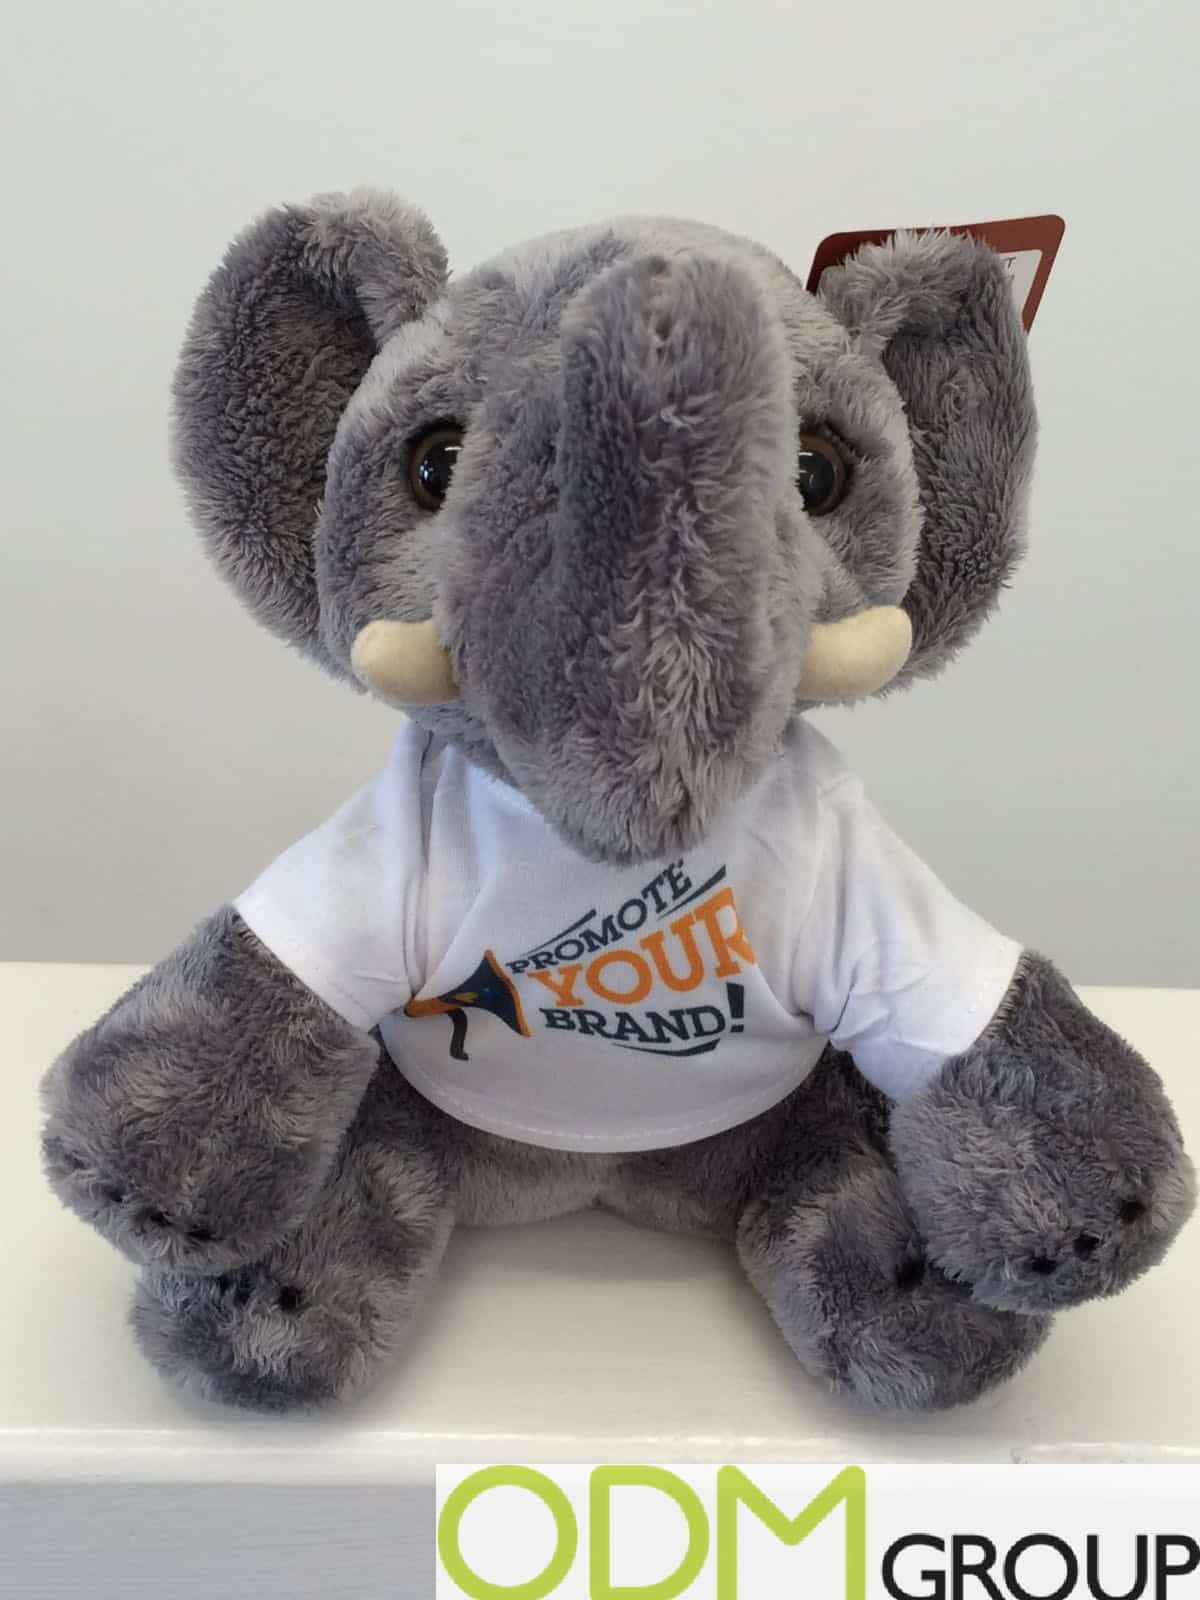 Promotional Products Week #promoteyourbrand with plush mascot